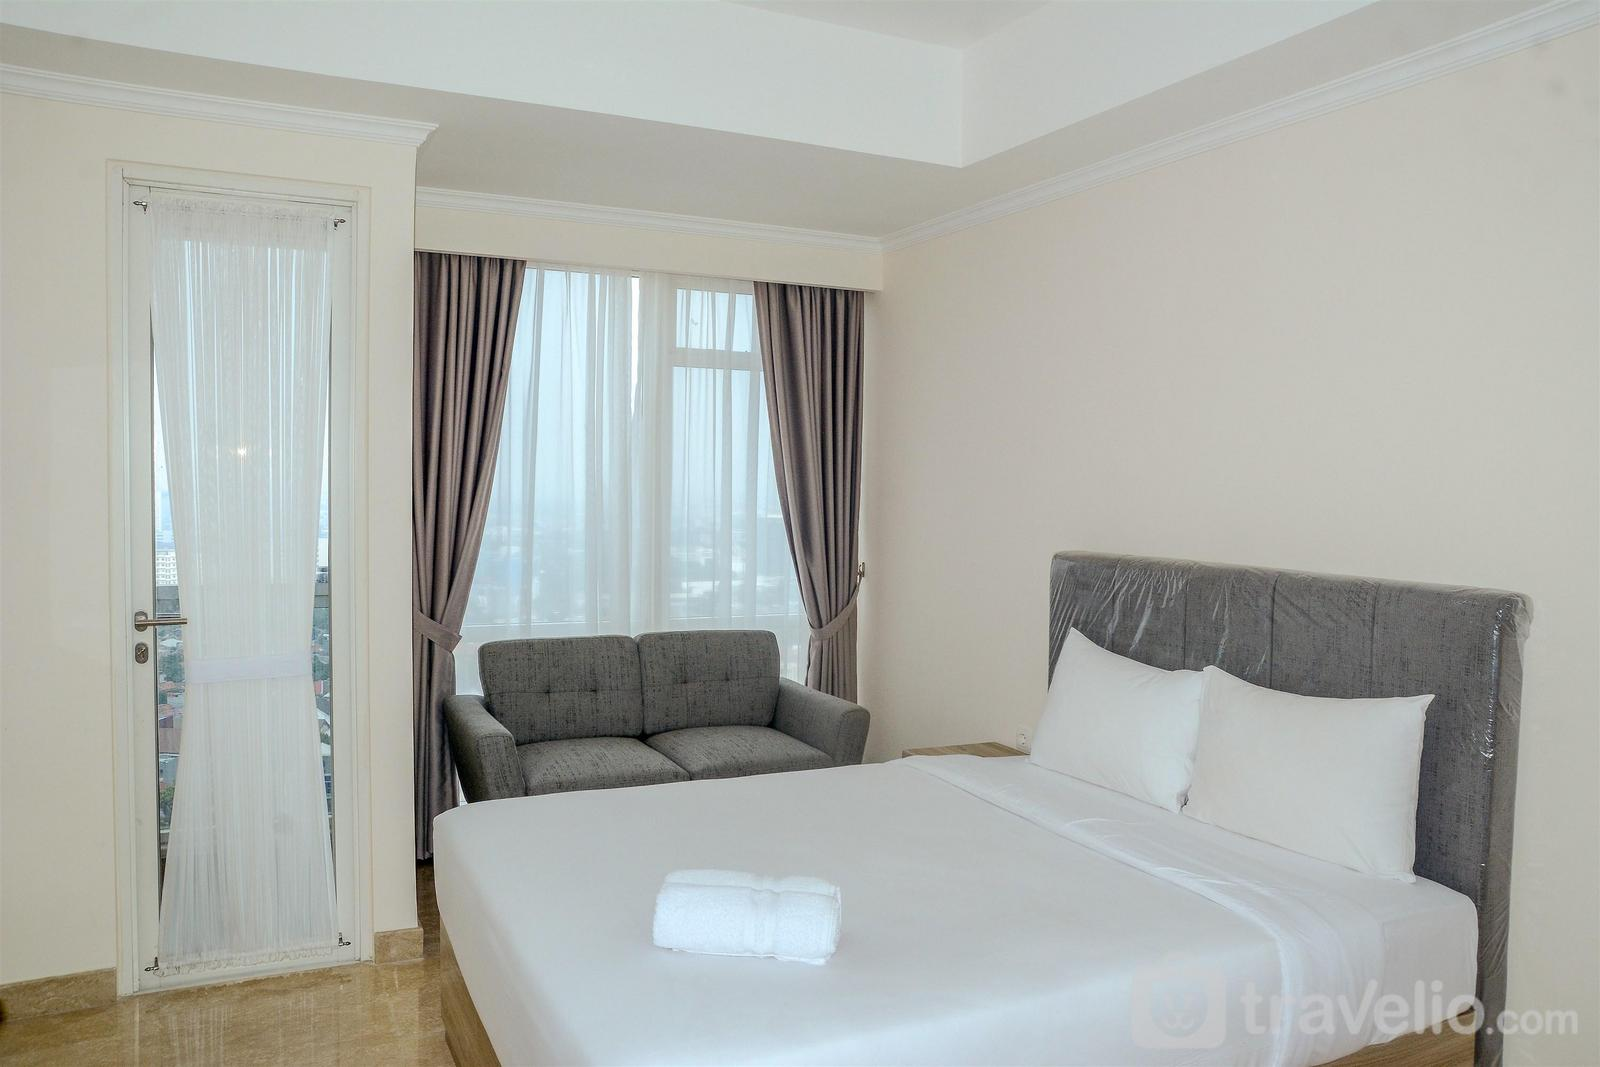 Menteng Park - New Studio Menteng Park Apartment with City View By Travelio